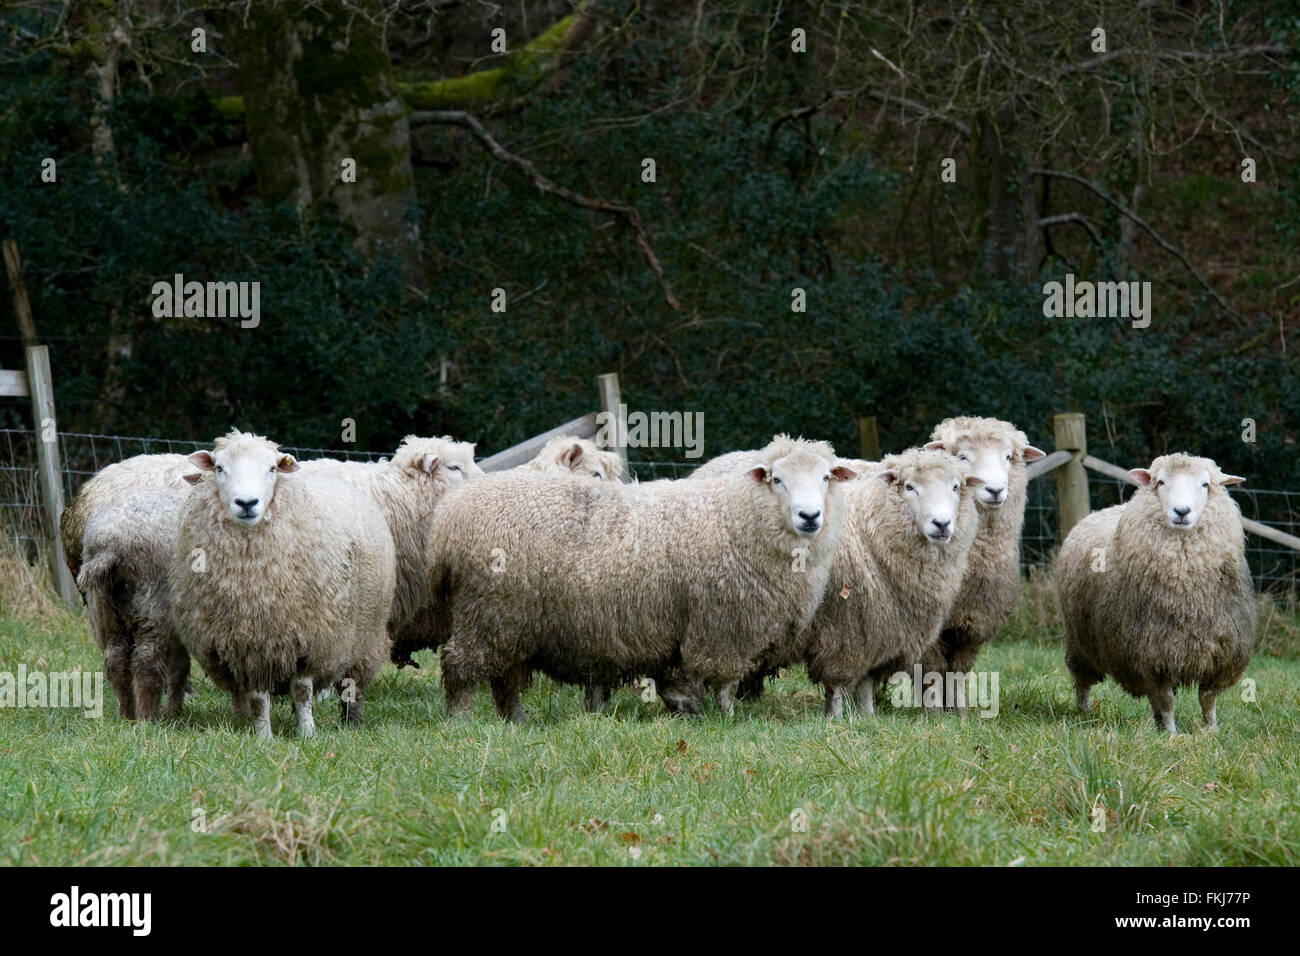 romney sheep - Stock Image